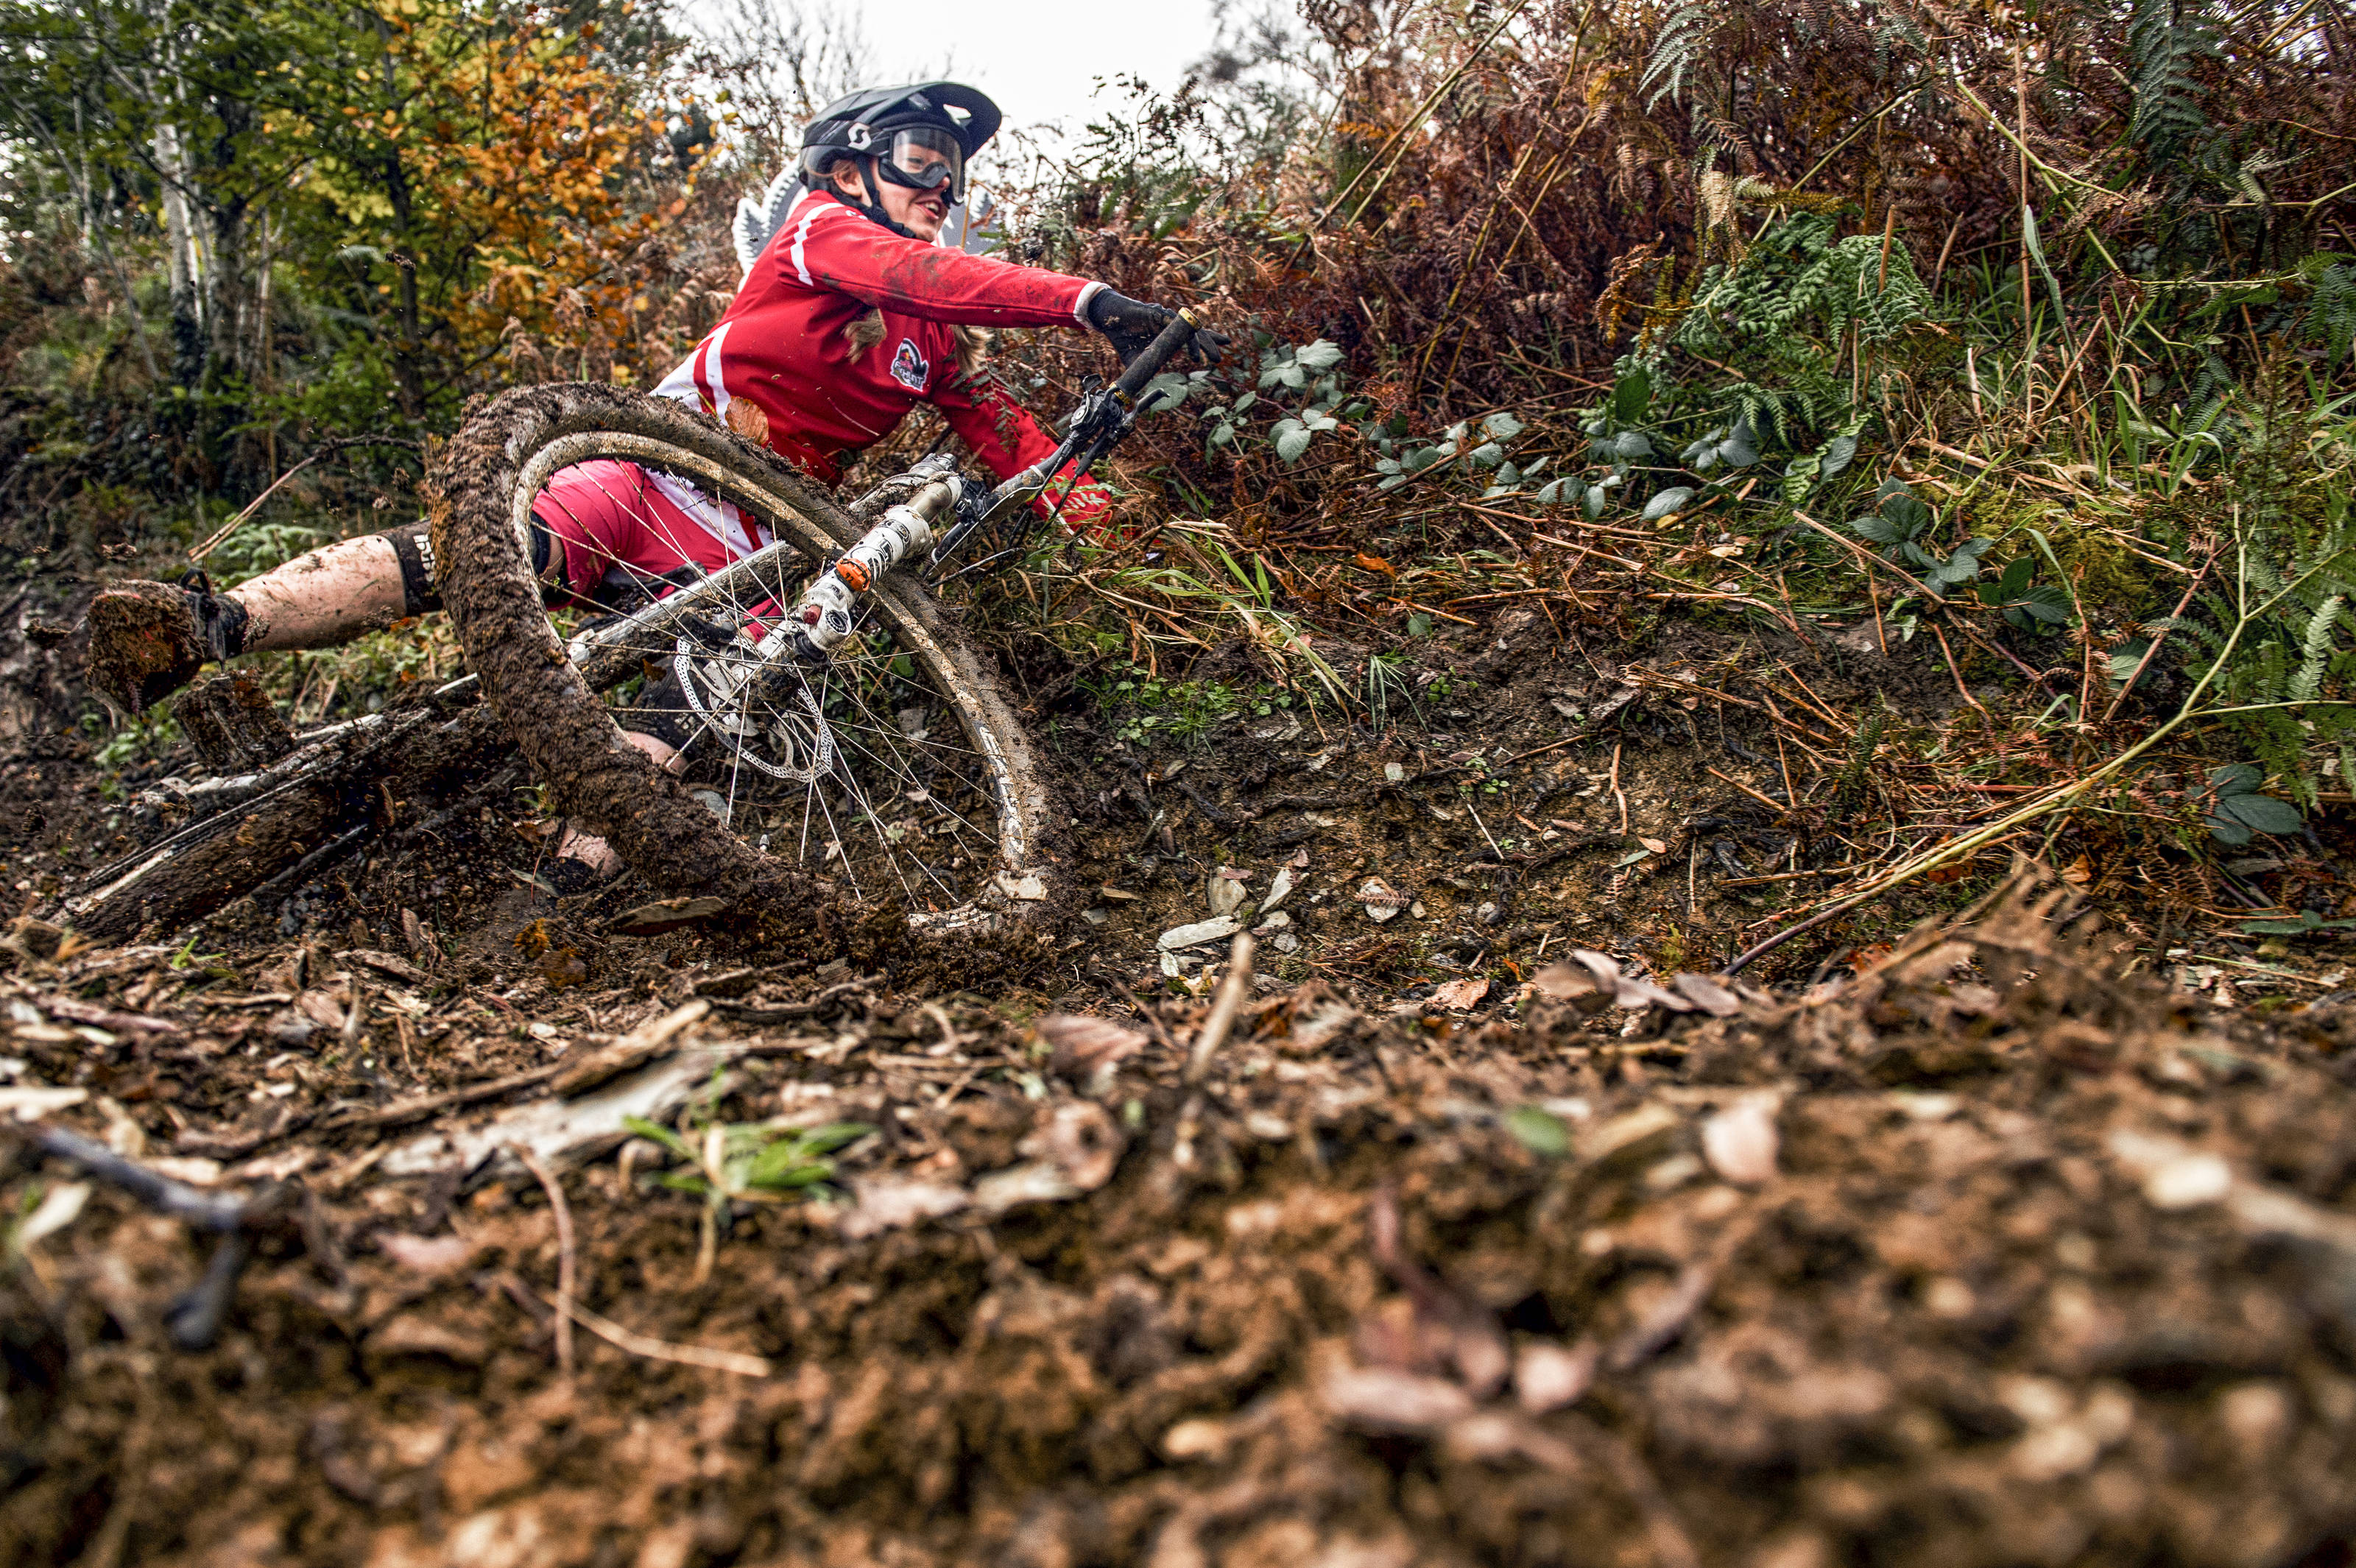 A rider crashes in the mud at the Red Bull Fox Hunt